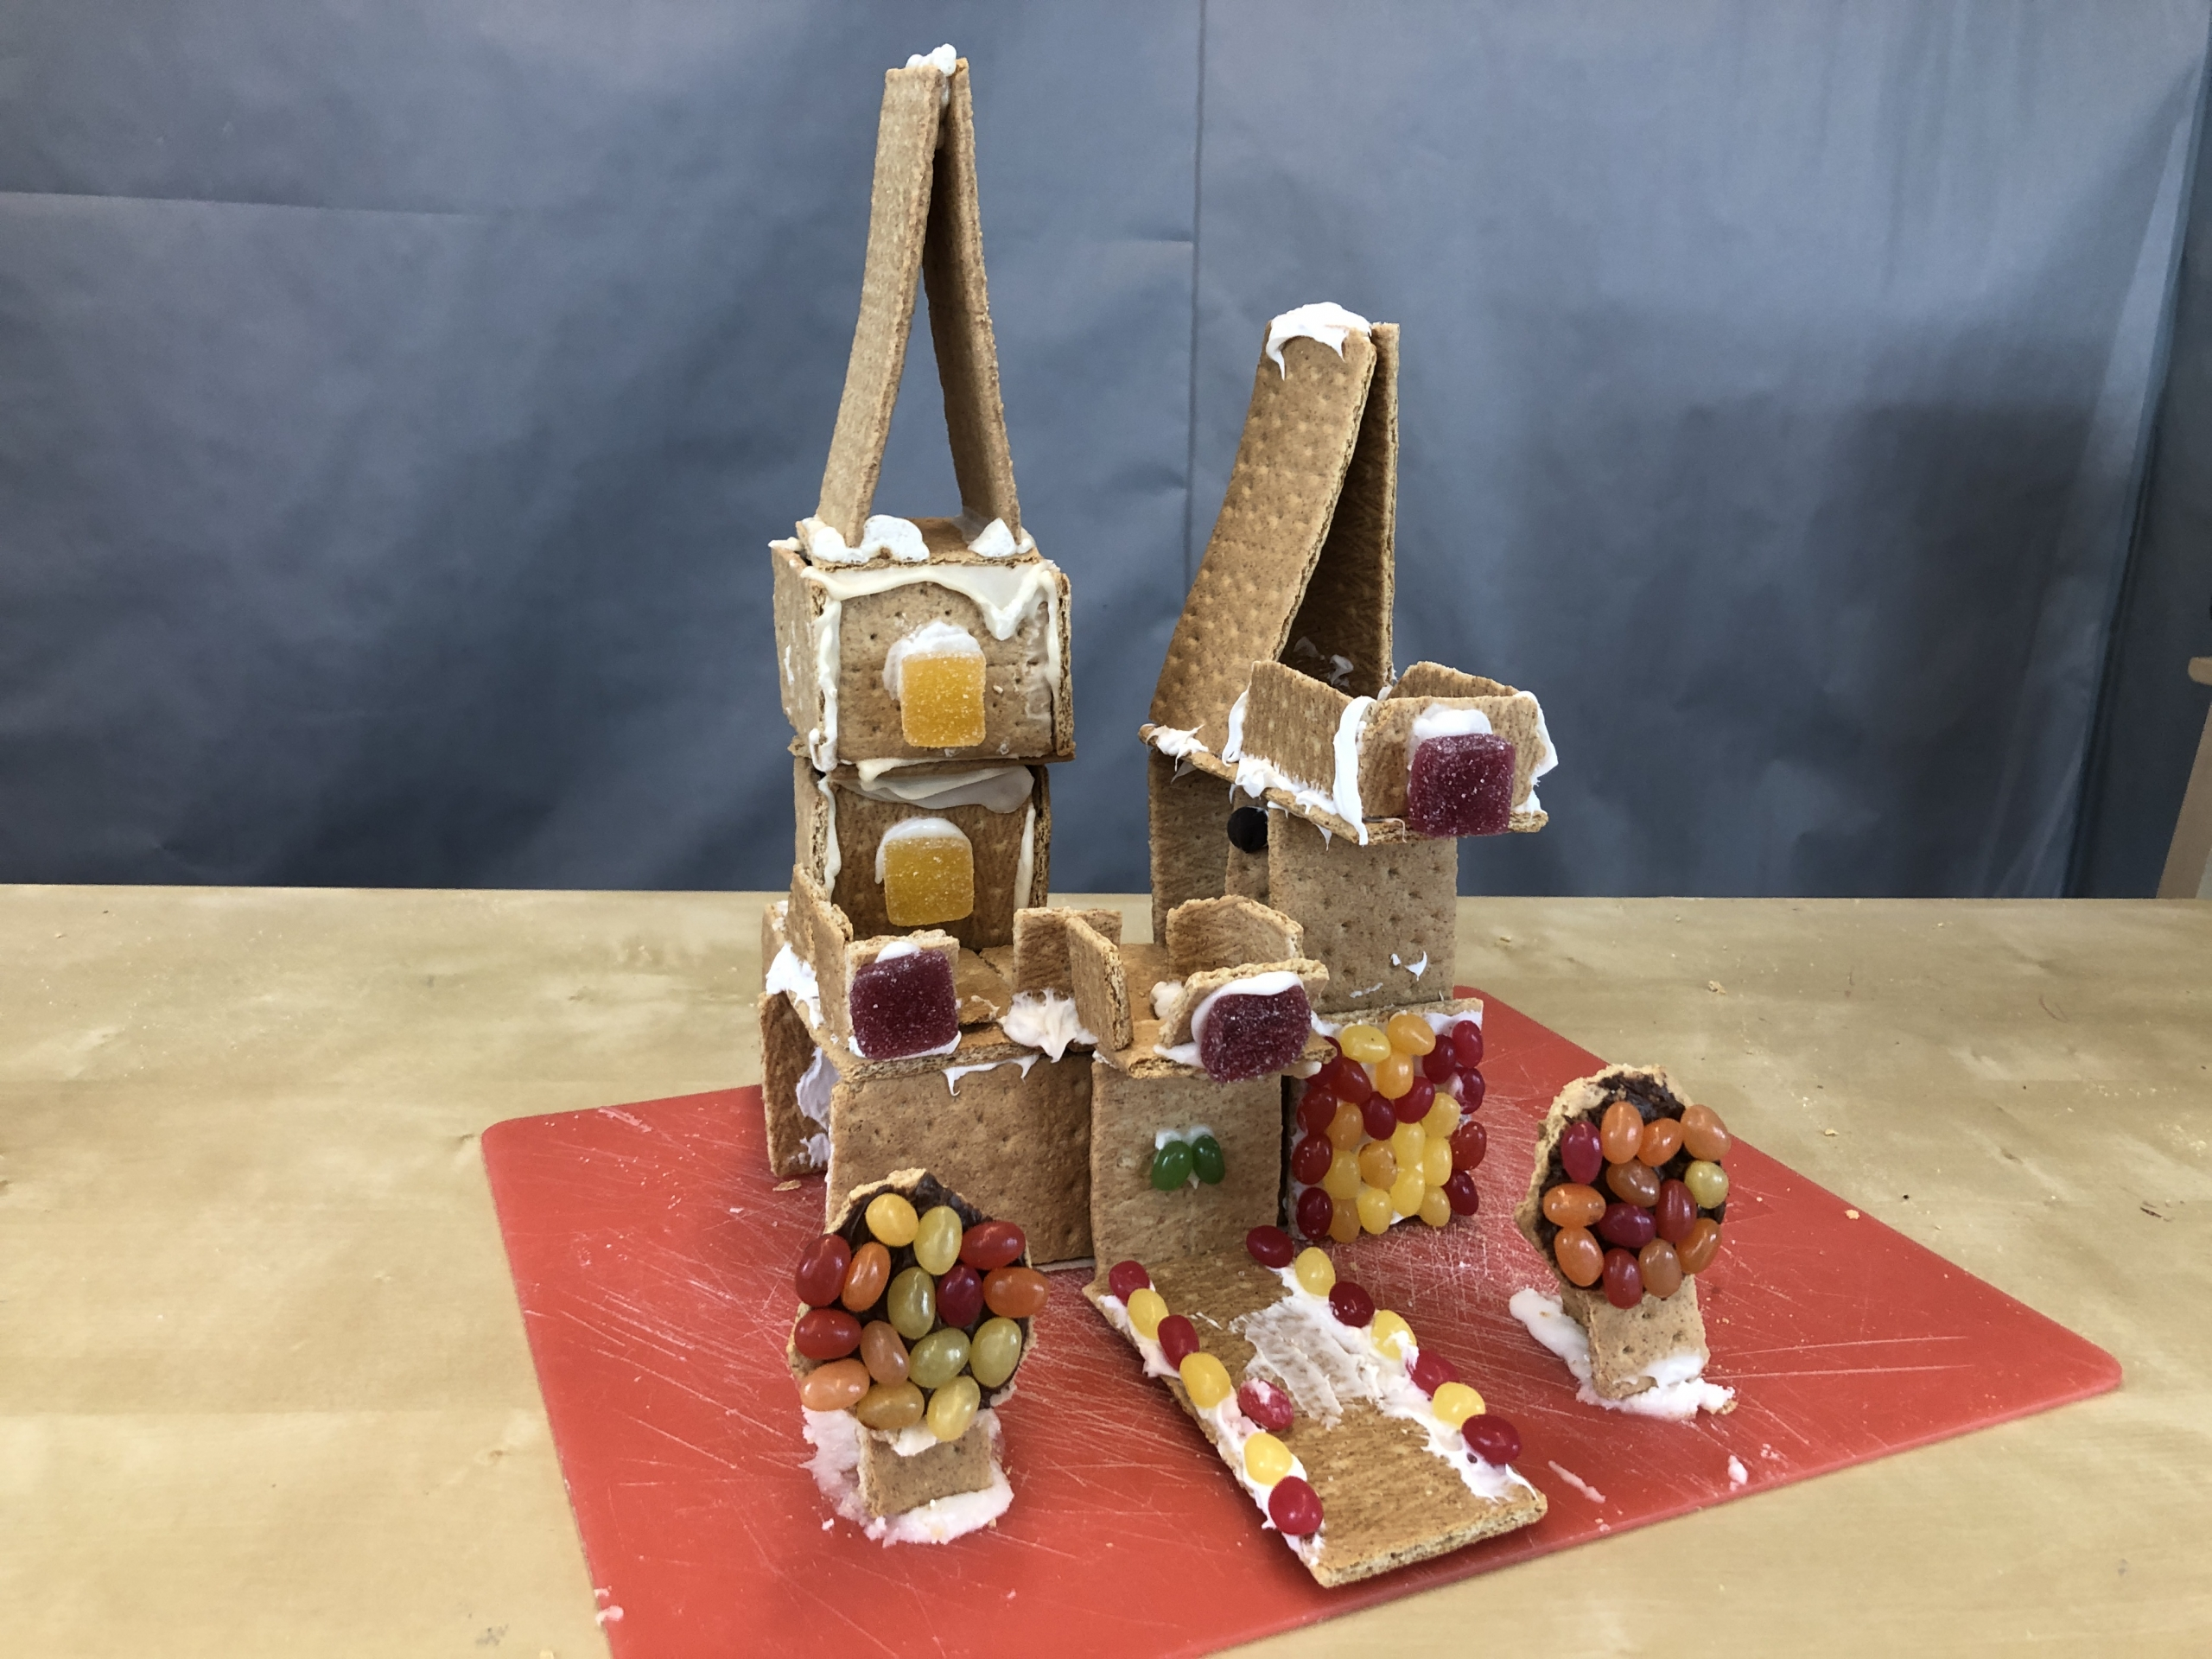 Galileo Anywhere - Seasonal Online Classes. Edible Architecture for 4th & 5th grade kids